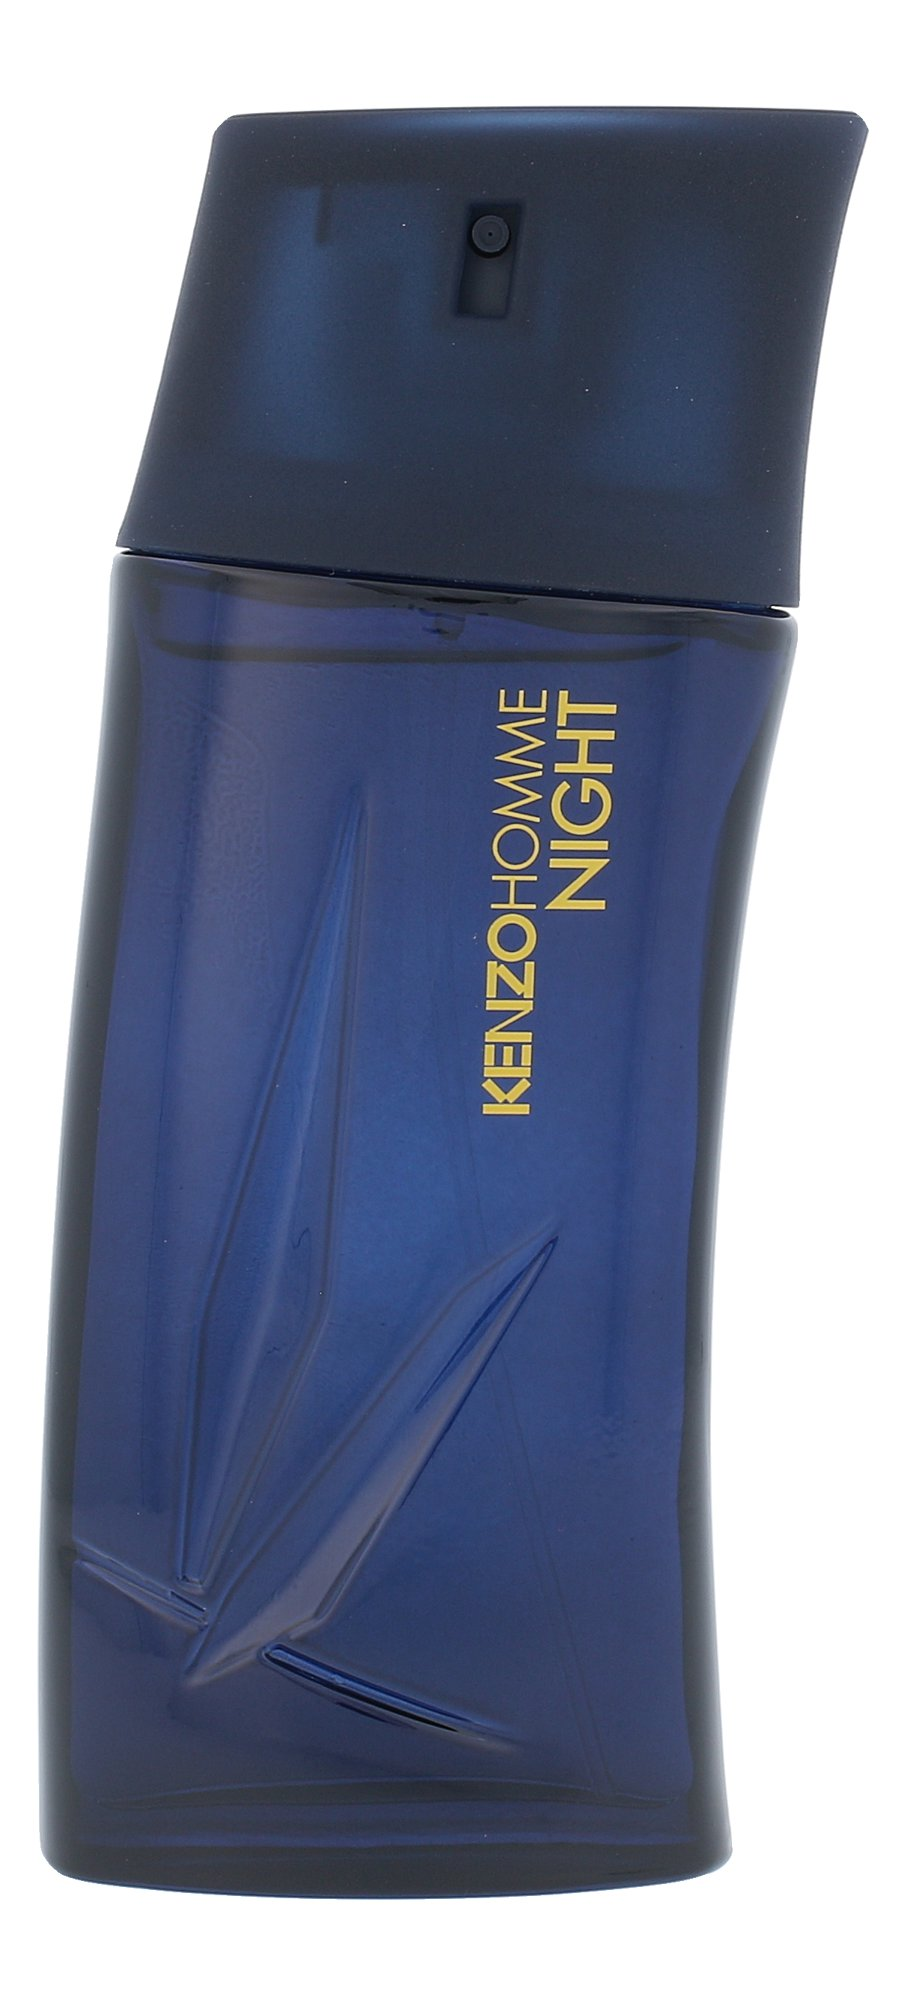 KENZO Kenzo Homme Night, edt 50ml